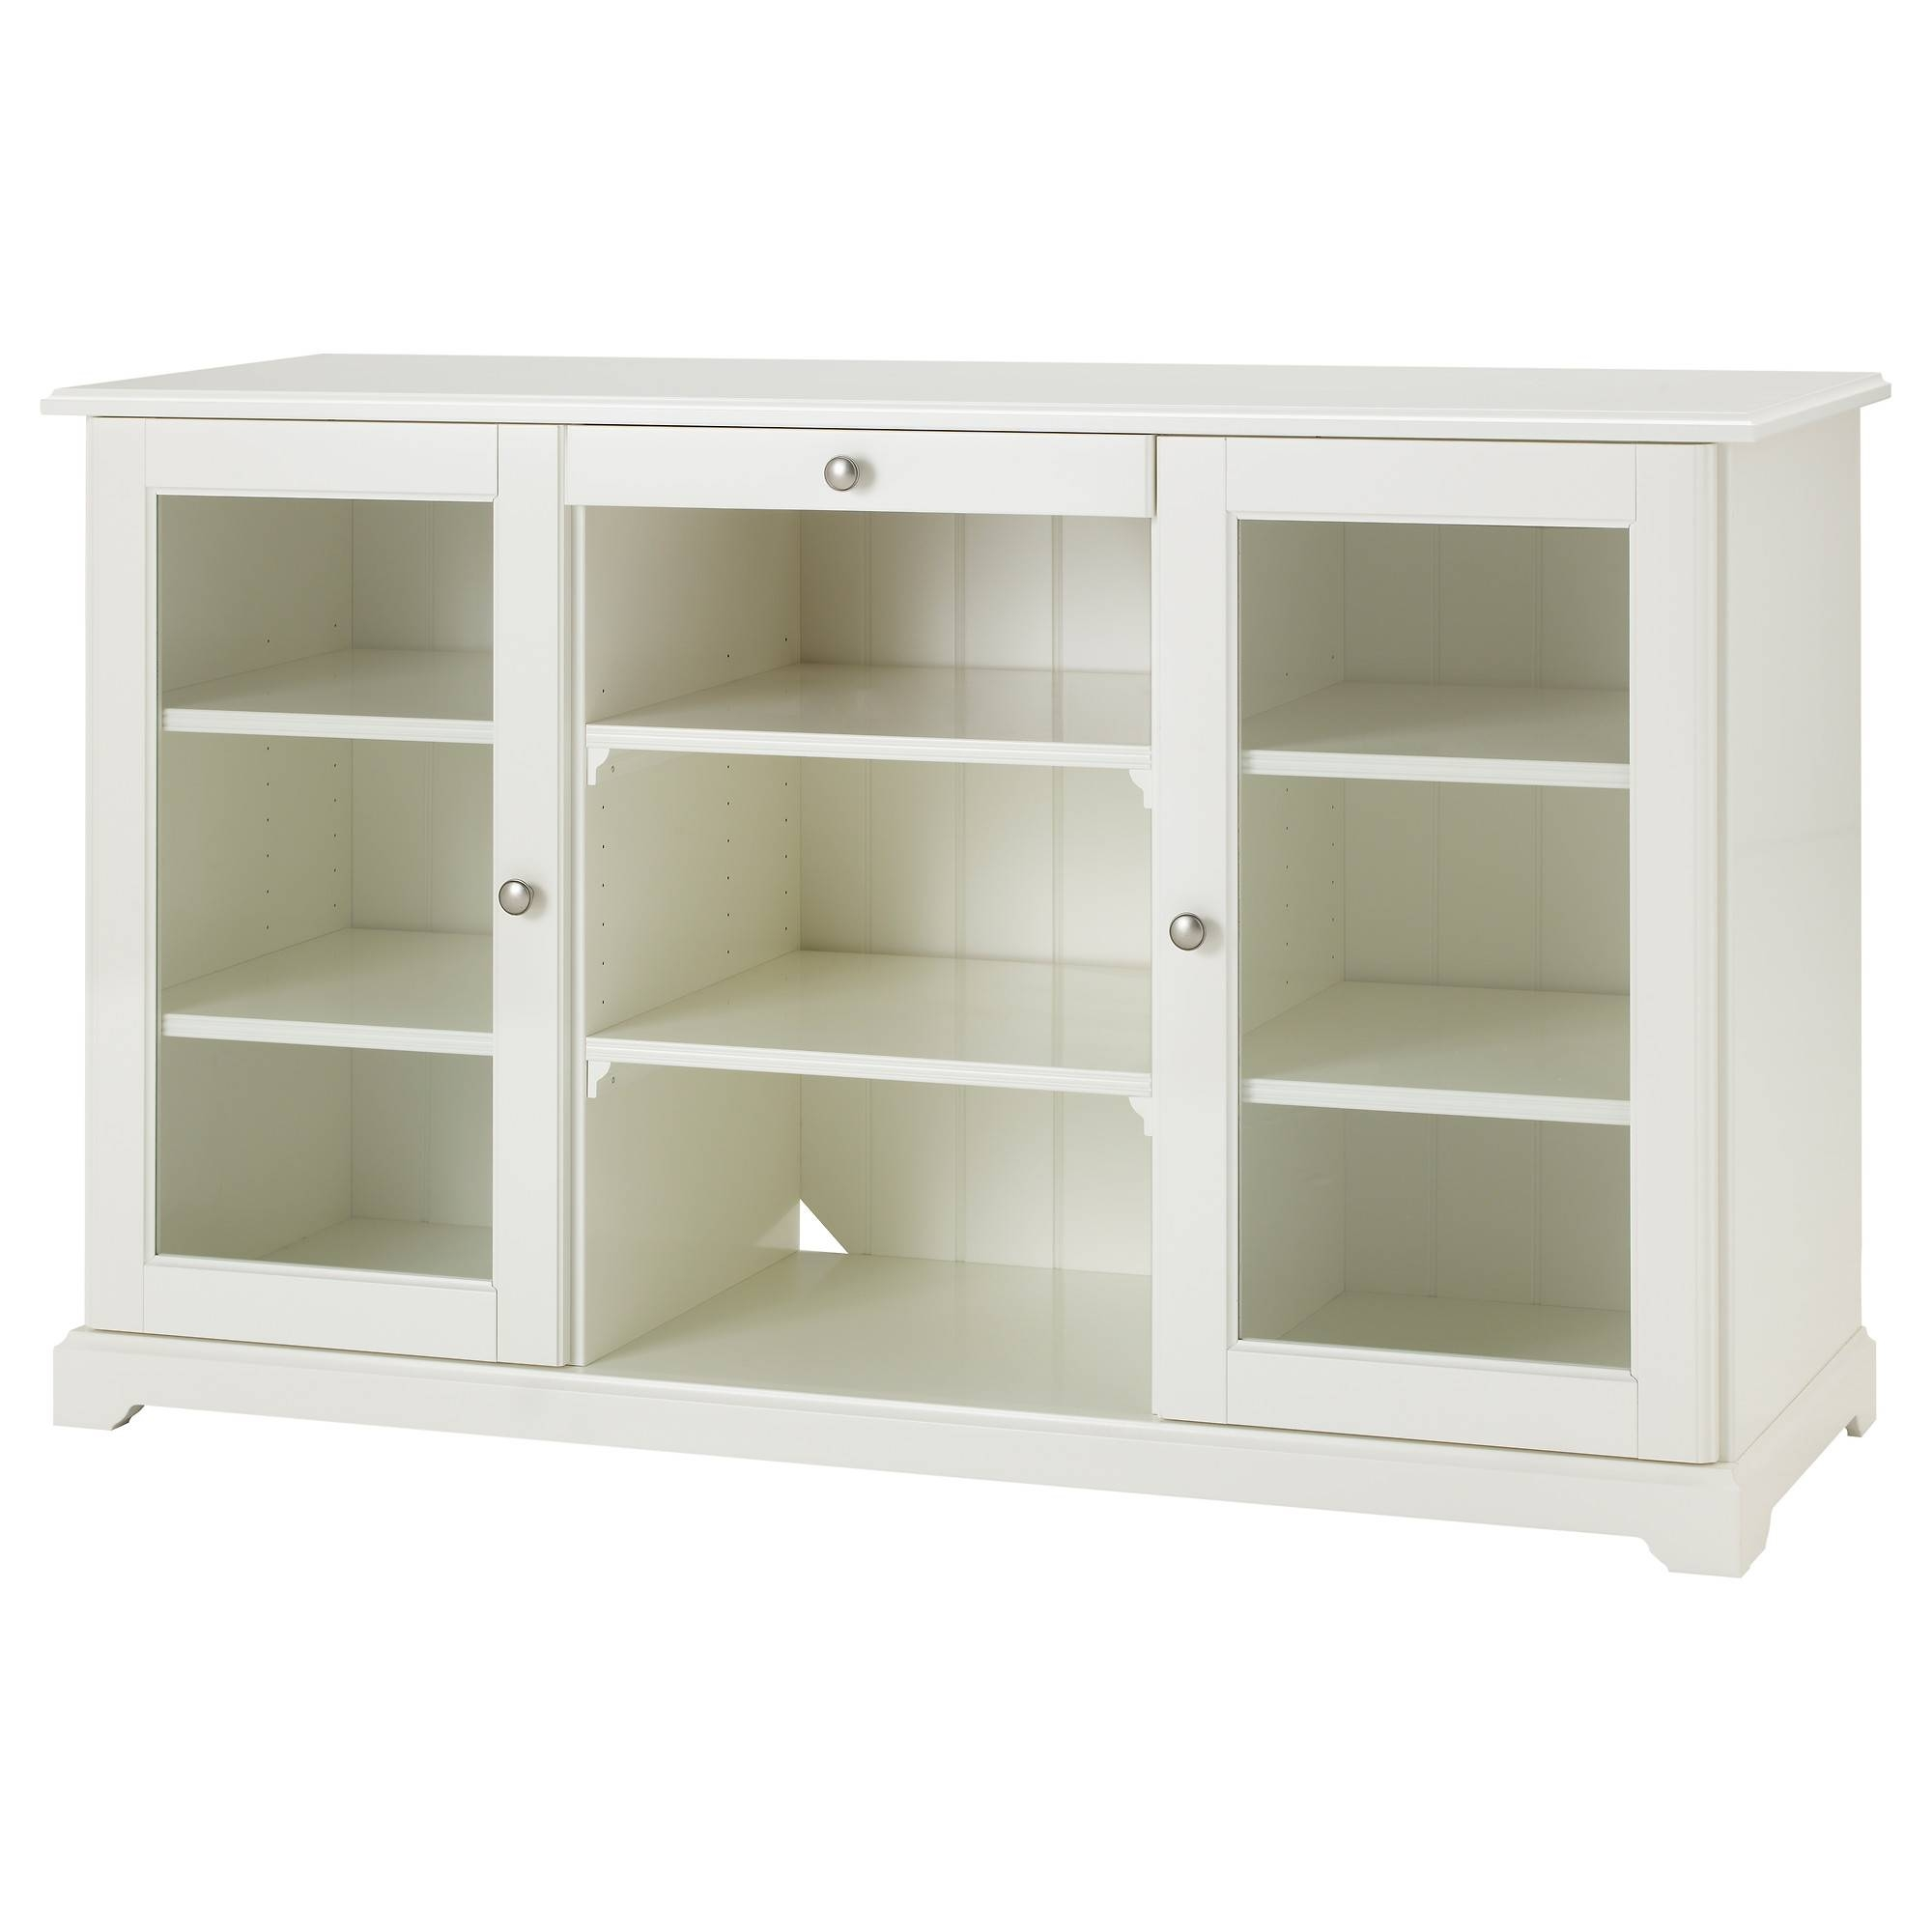 Cabinets & Console Tables - Ikea within Large White Sideboards (Image 7 of 30)